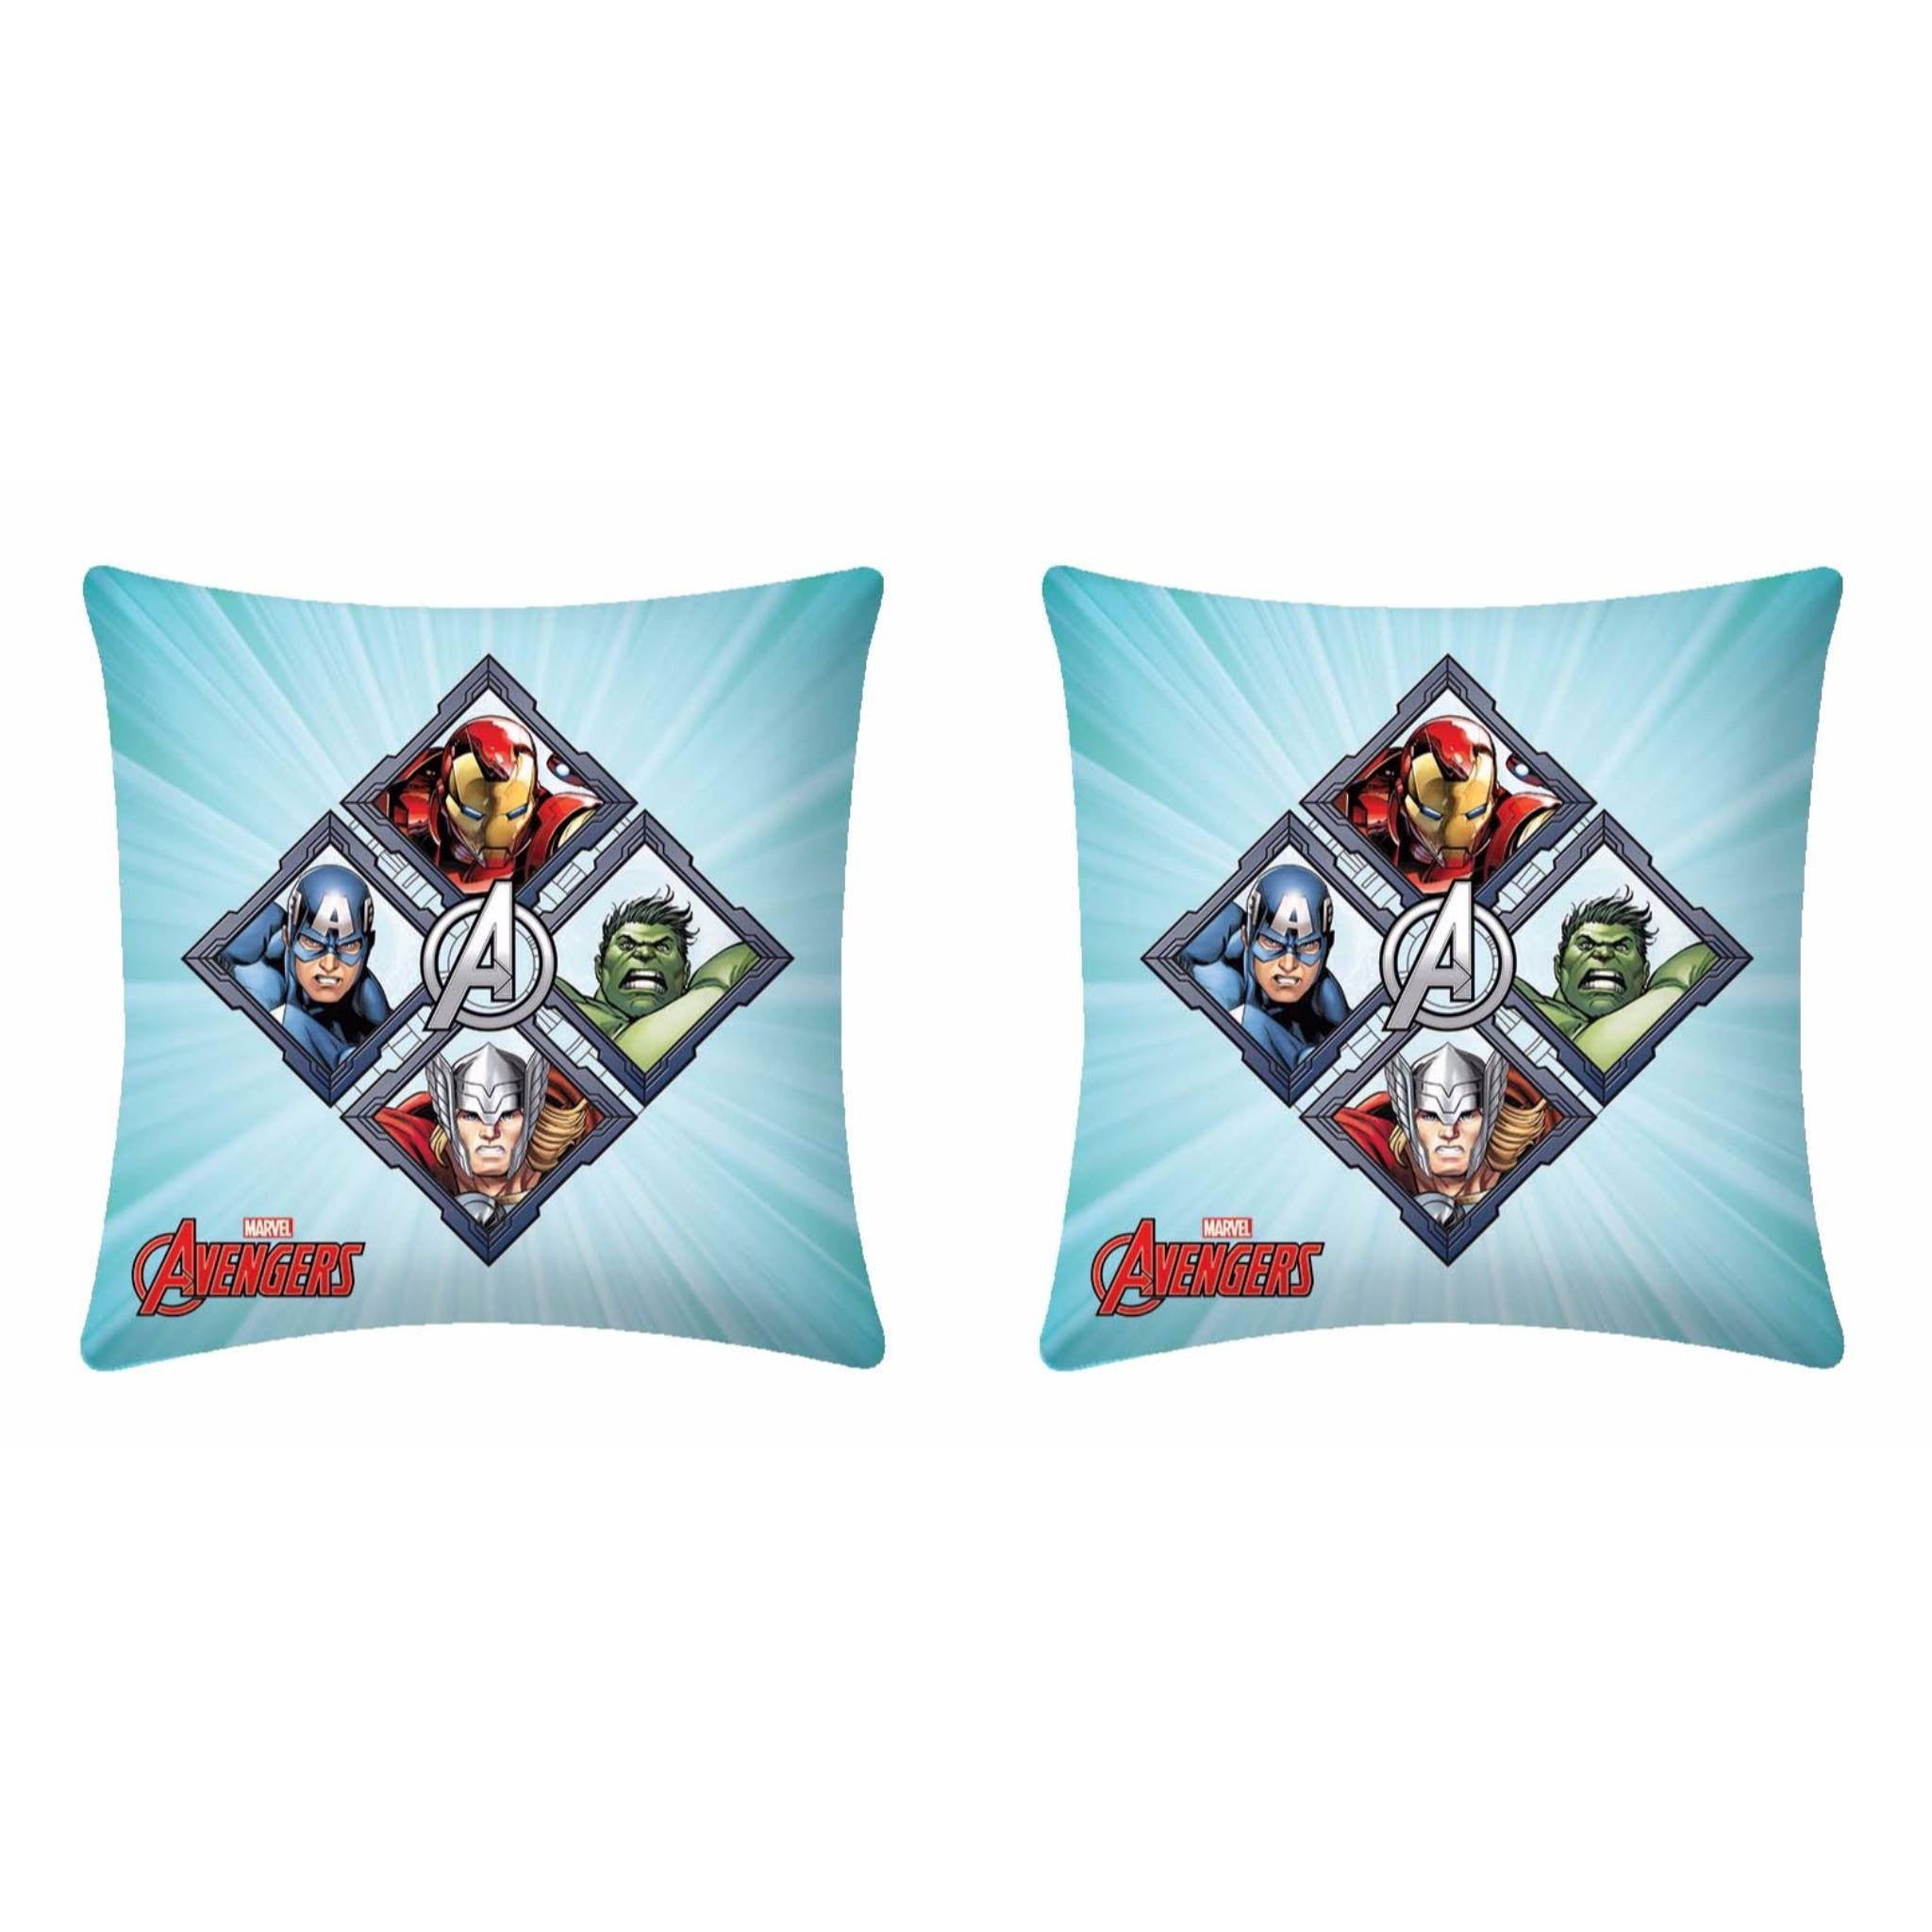 Avenger Fighters Polyester Cartoon Cushion- 1 Piece Pack - Über Urban Cushion